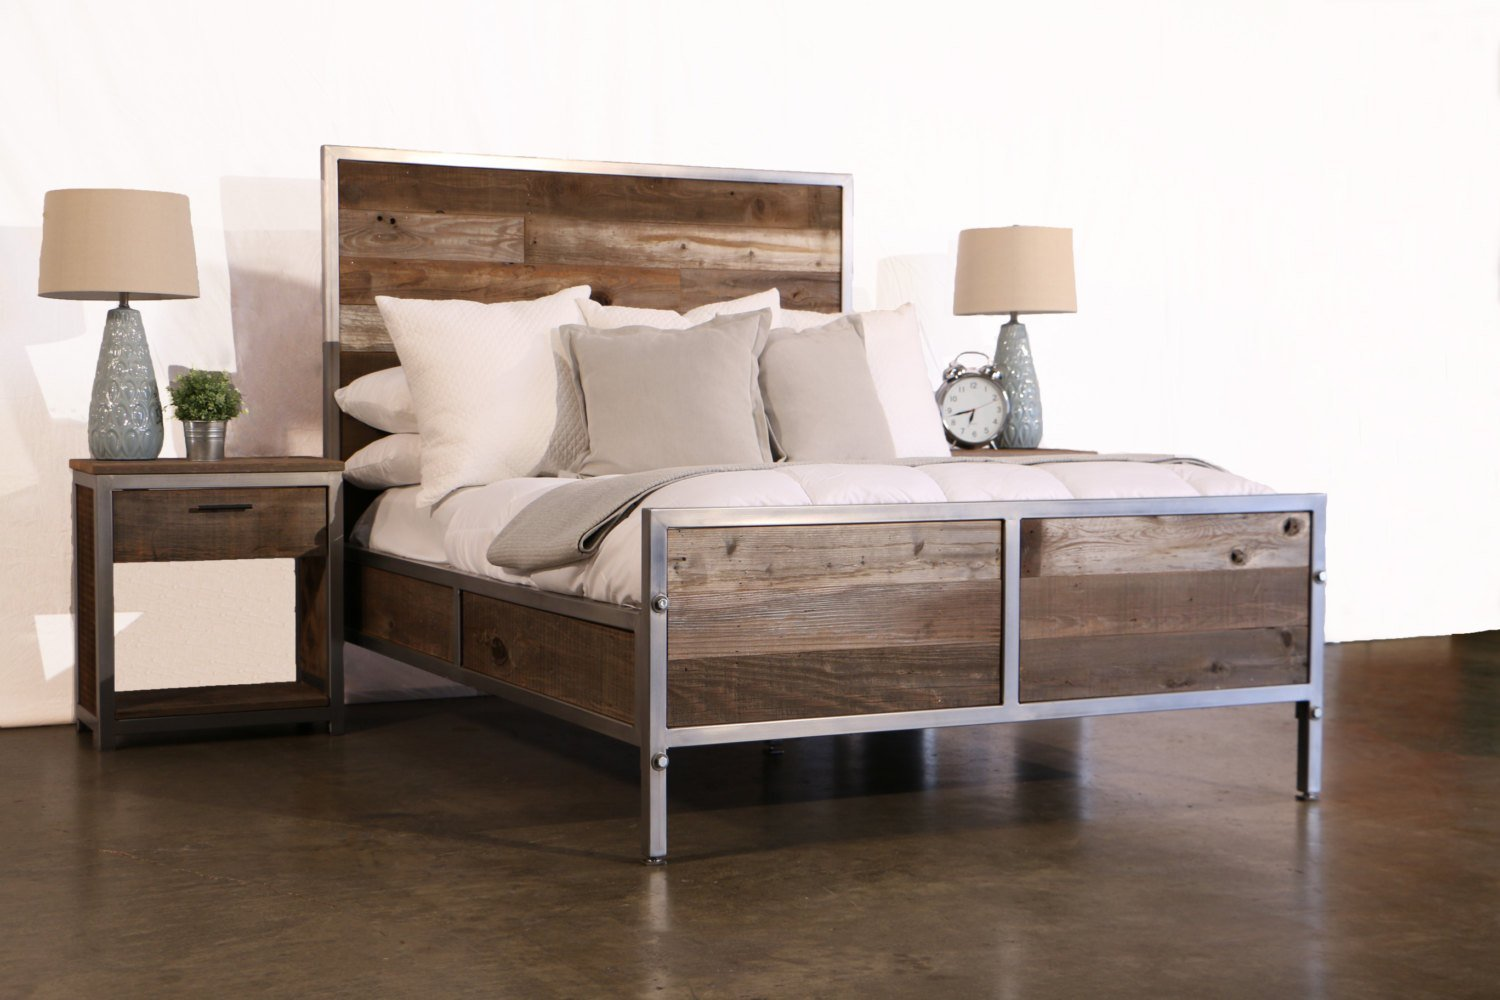 Best Reclaimed Wood Industrial Bedroom Set By Foundpurpose On Etsy With Pictures